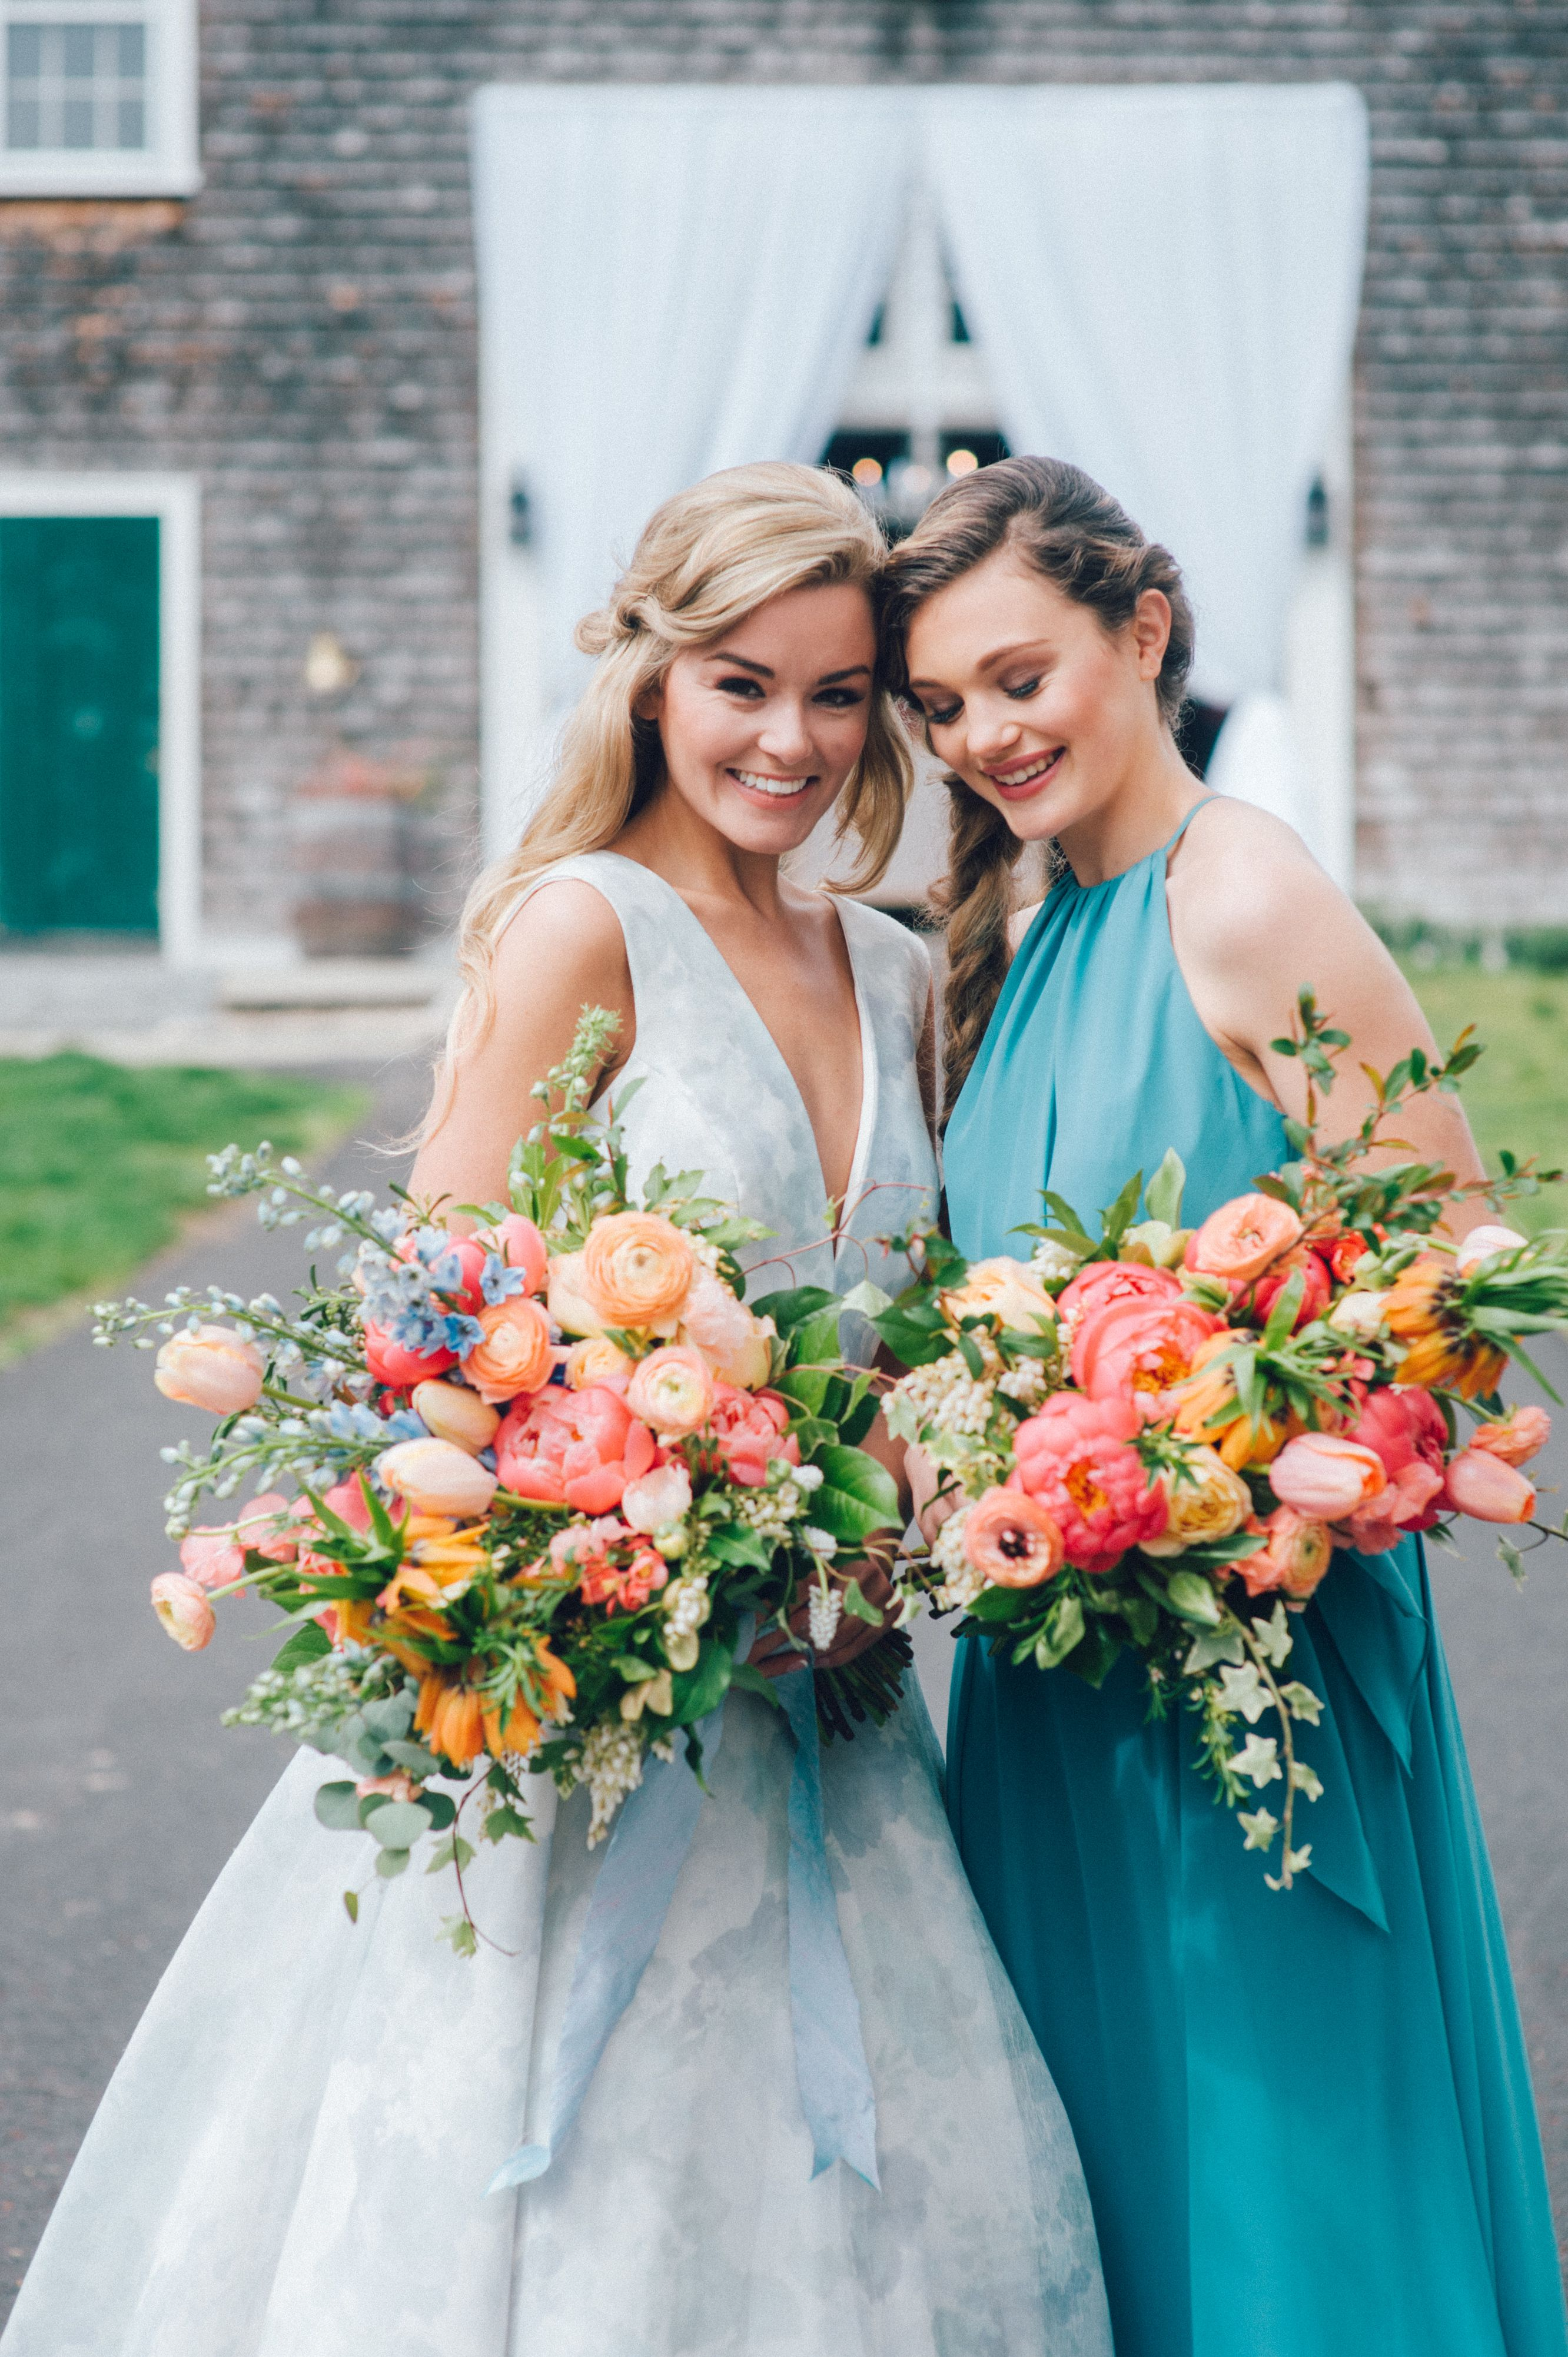 A painted blue floral wedding gown adds a touch of whimsy